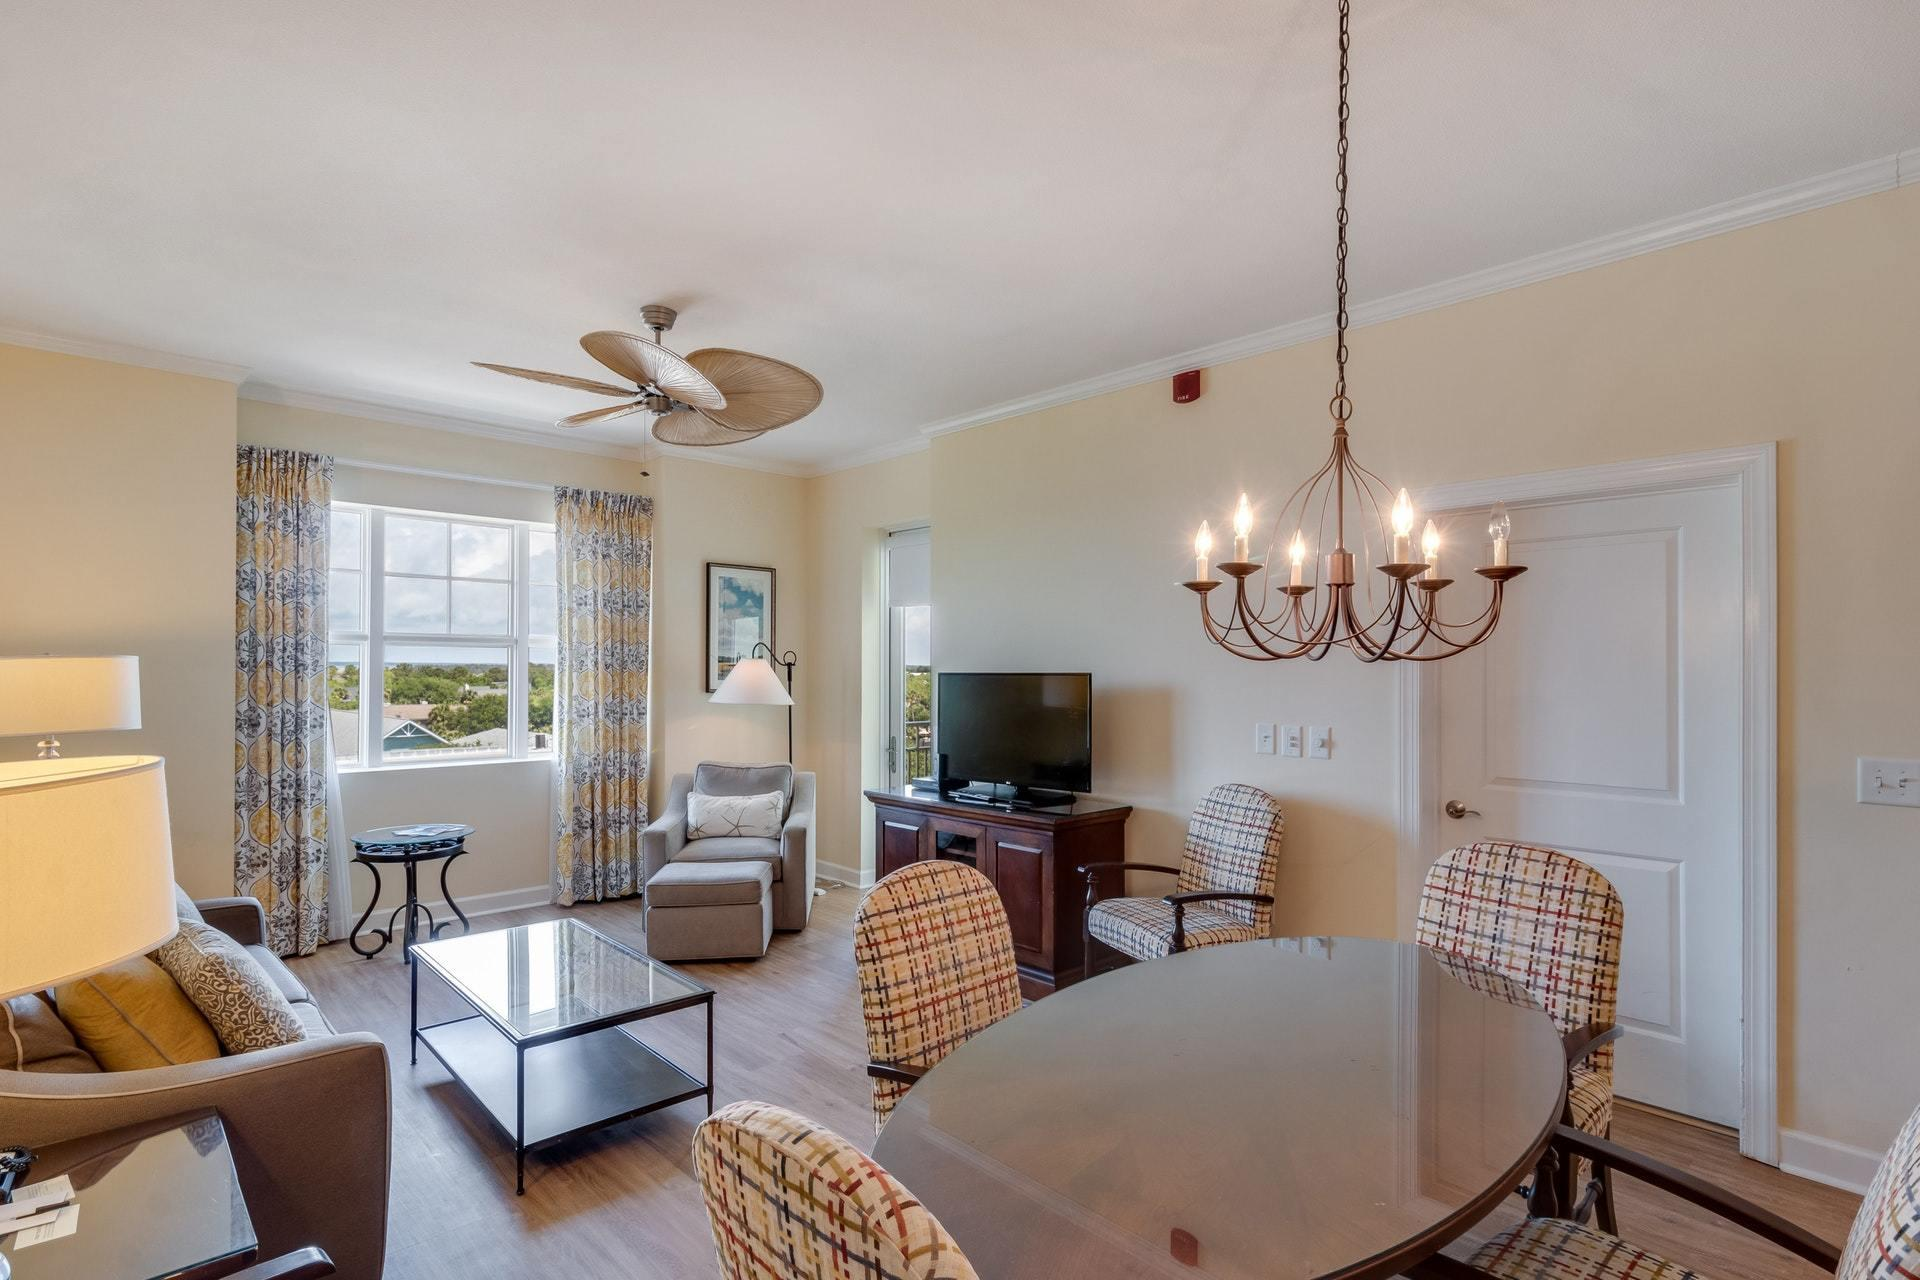 Wild Dunes Homes For Sale - 505/507 Village At Wild Dunes, Isle of Palms, SC - 22